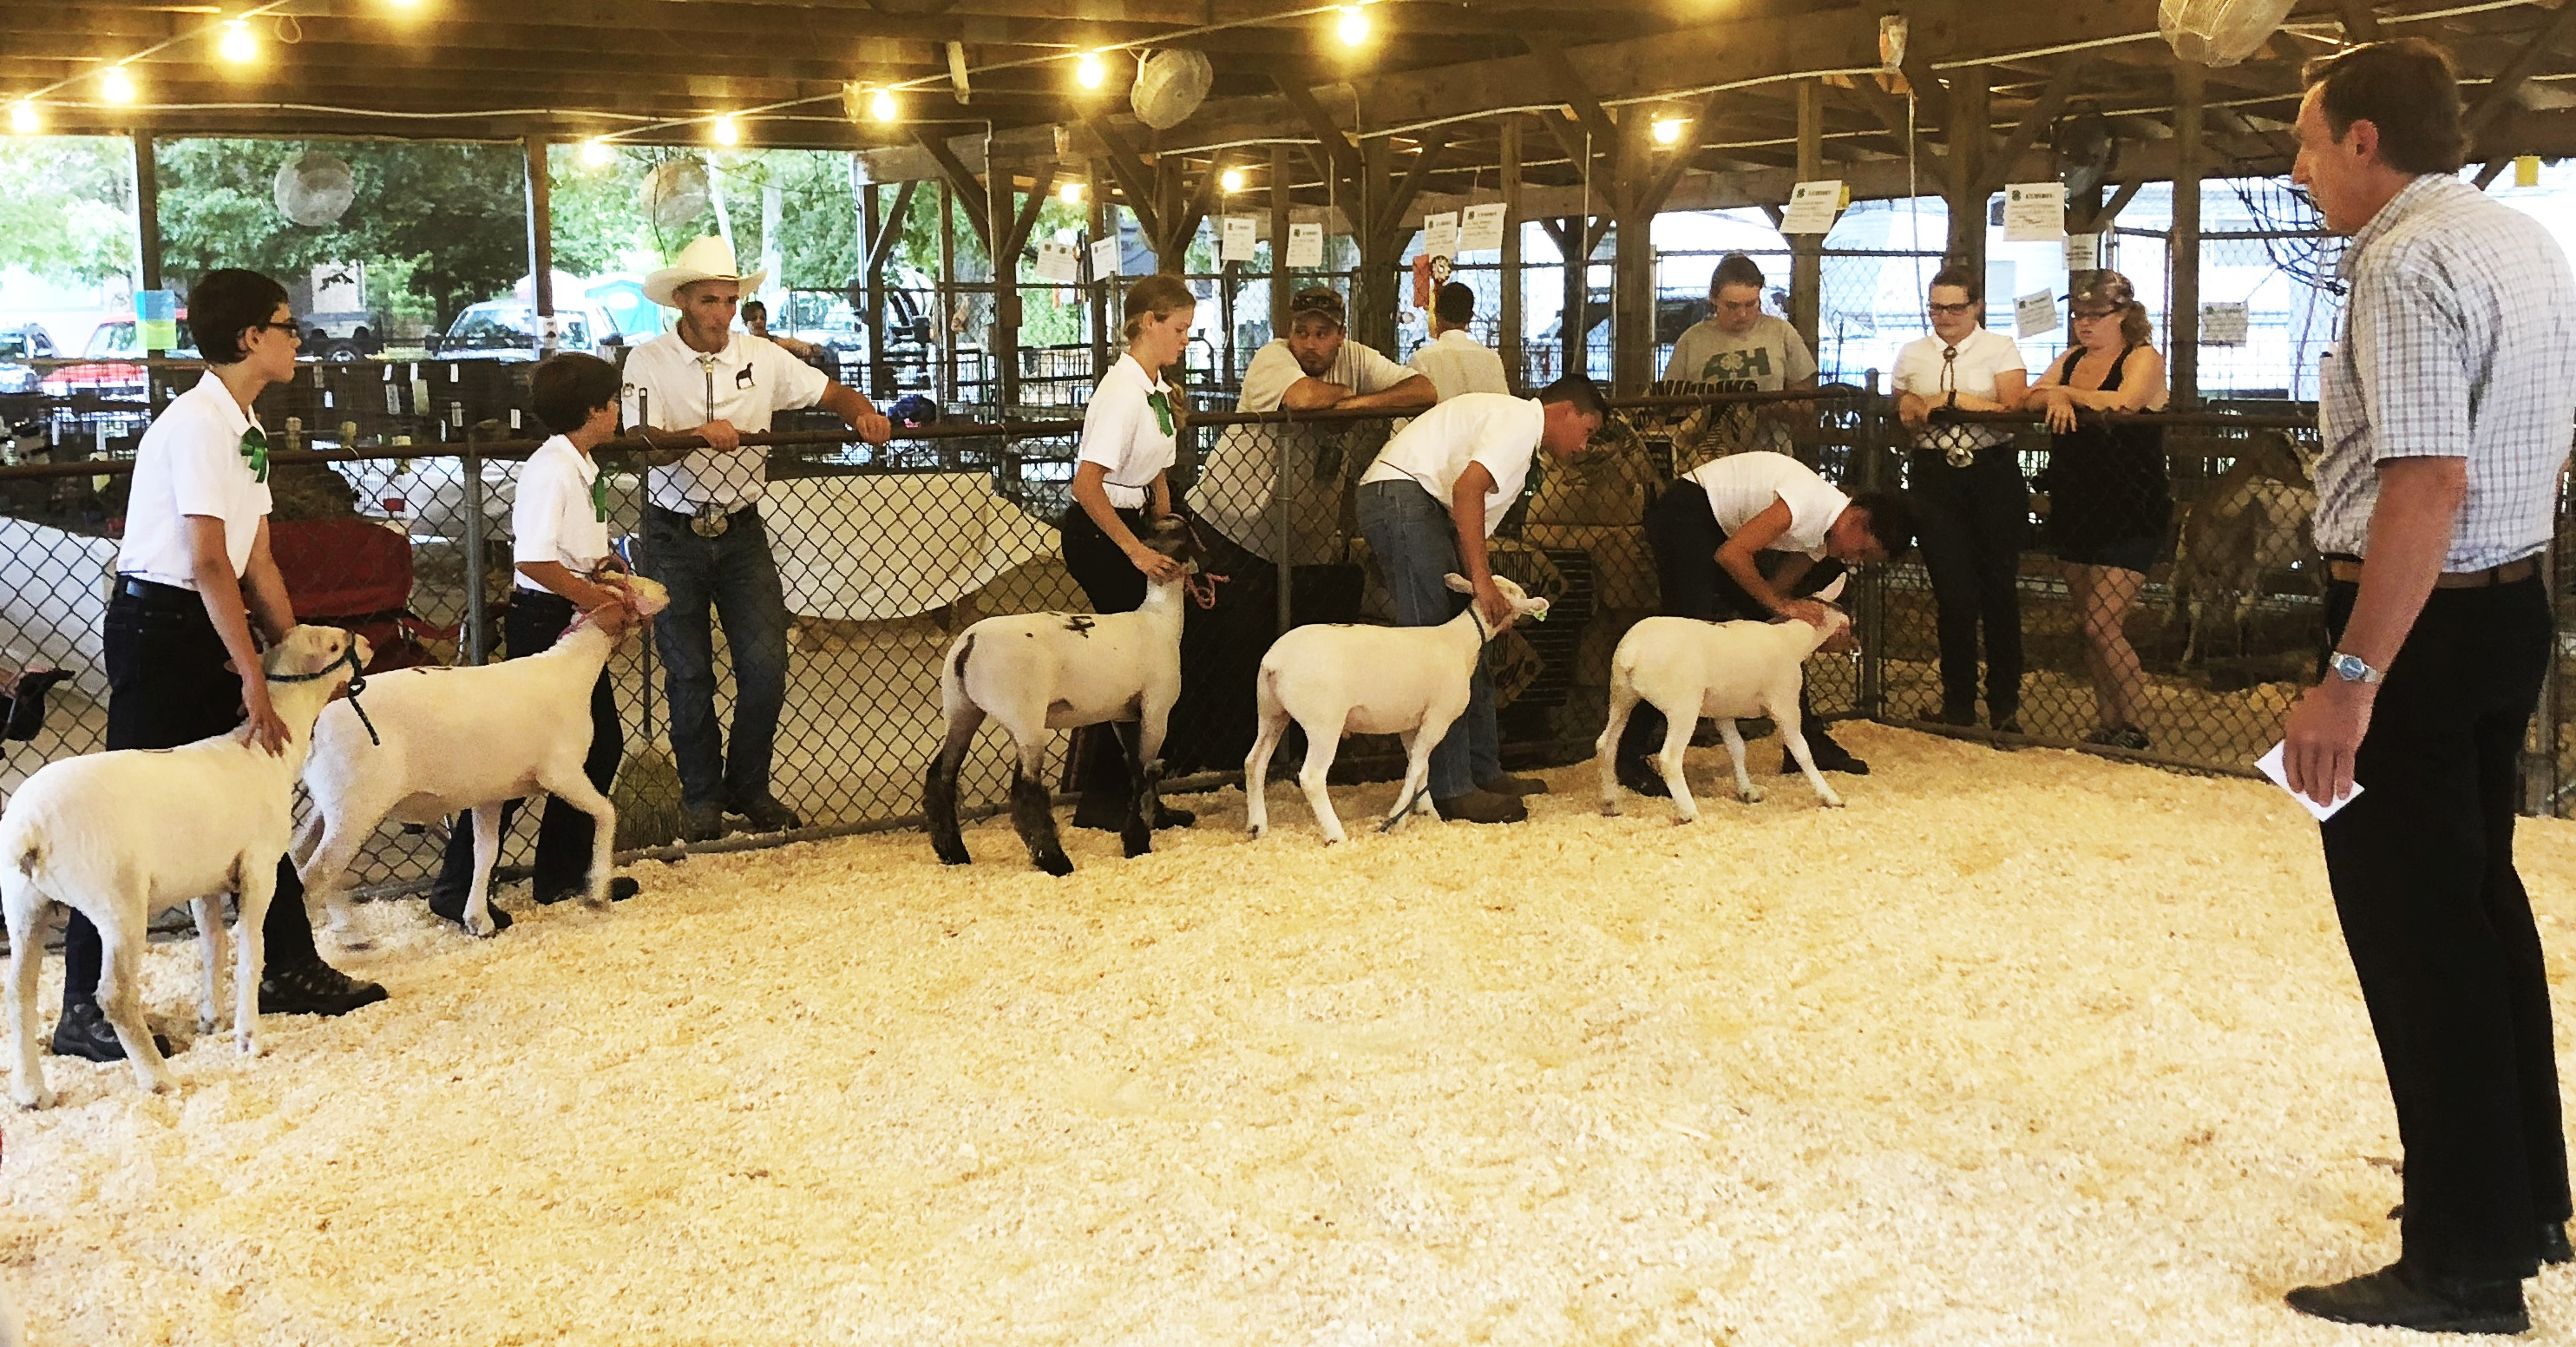 Judge Jeff Bringhurst, of Bringhurst Meats in Berlin, NJ looks over the Lamb Showmanship Class at the 2018 Cape May County 4-H Fair.